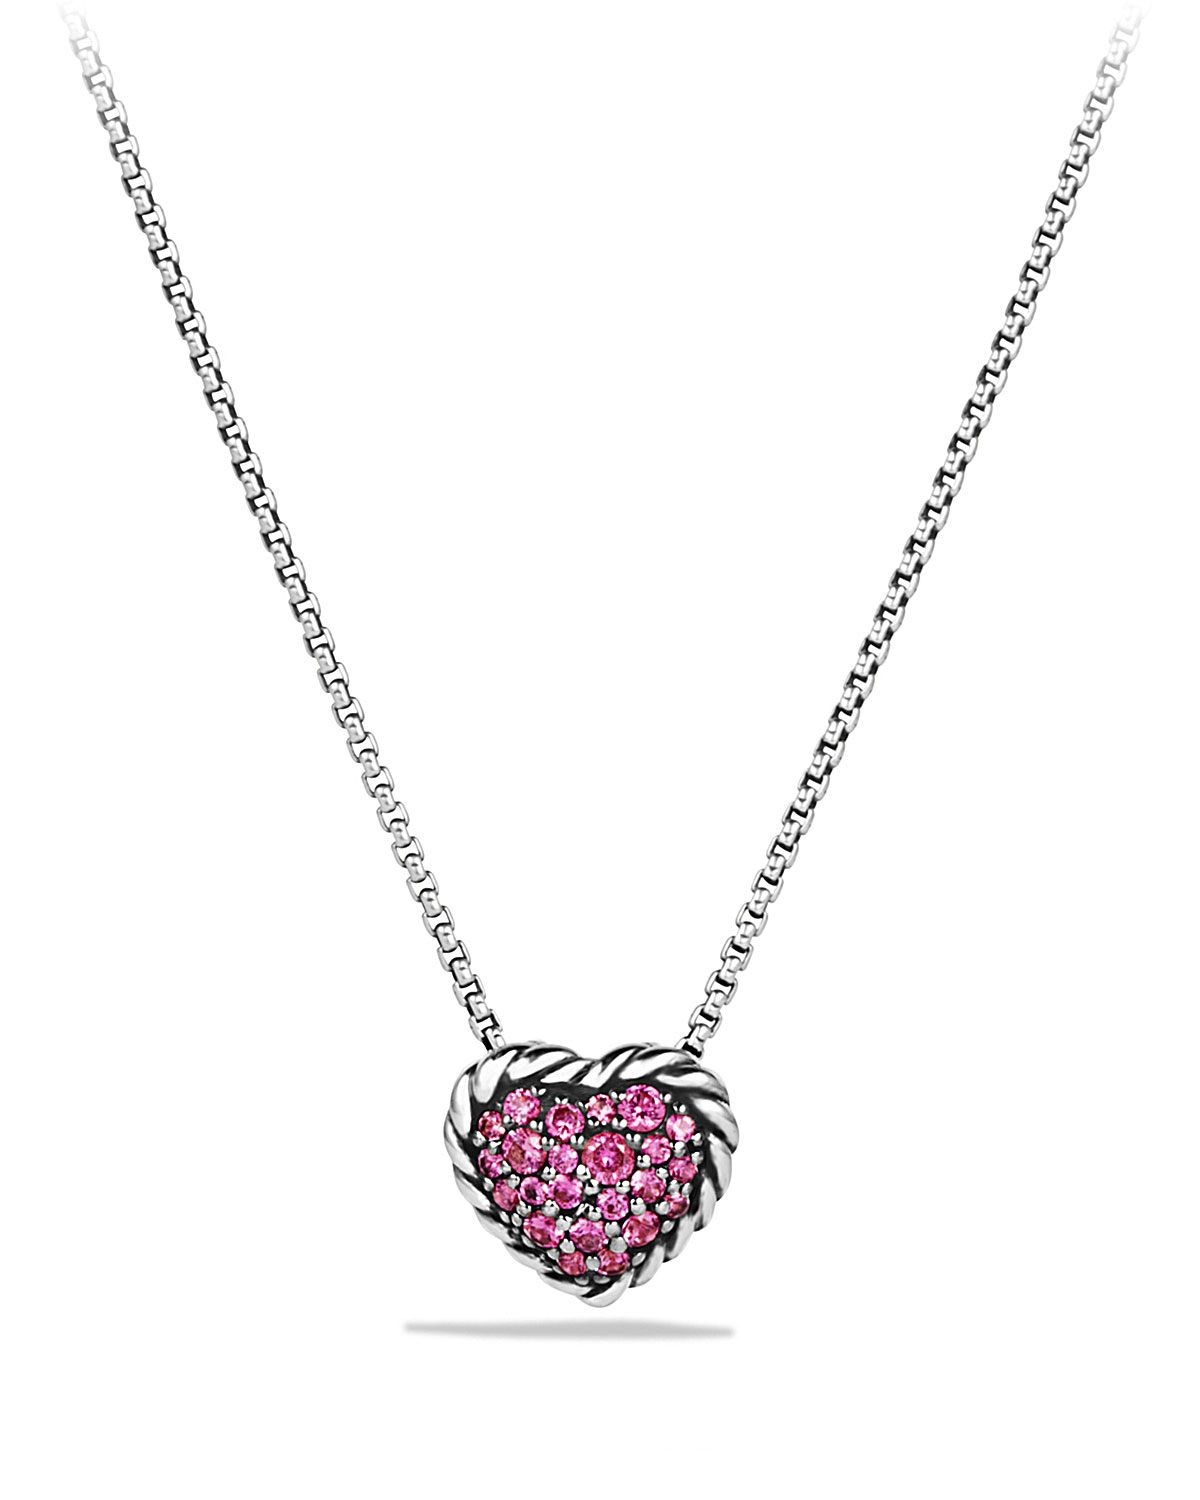 ea29552f8d1a4 Heart Pendant Necklace with Pink Sapphire